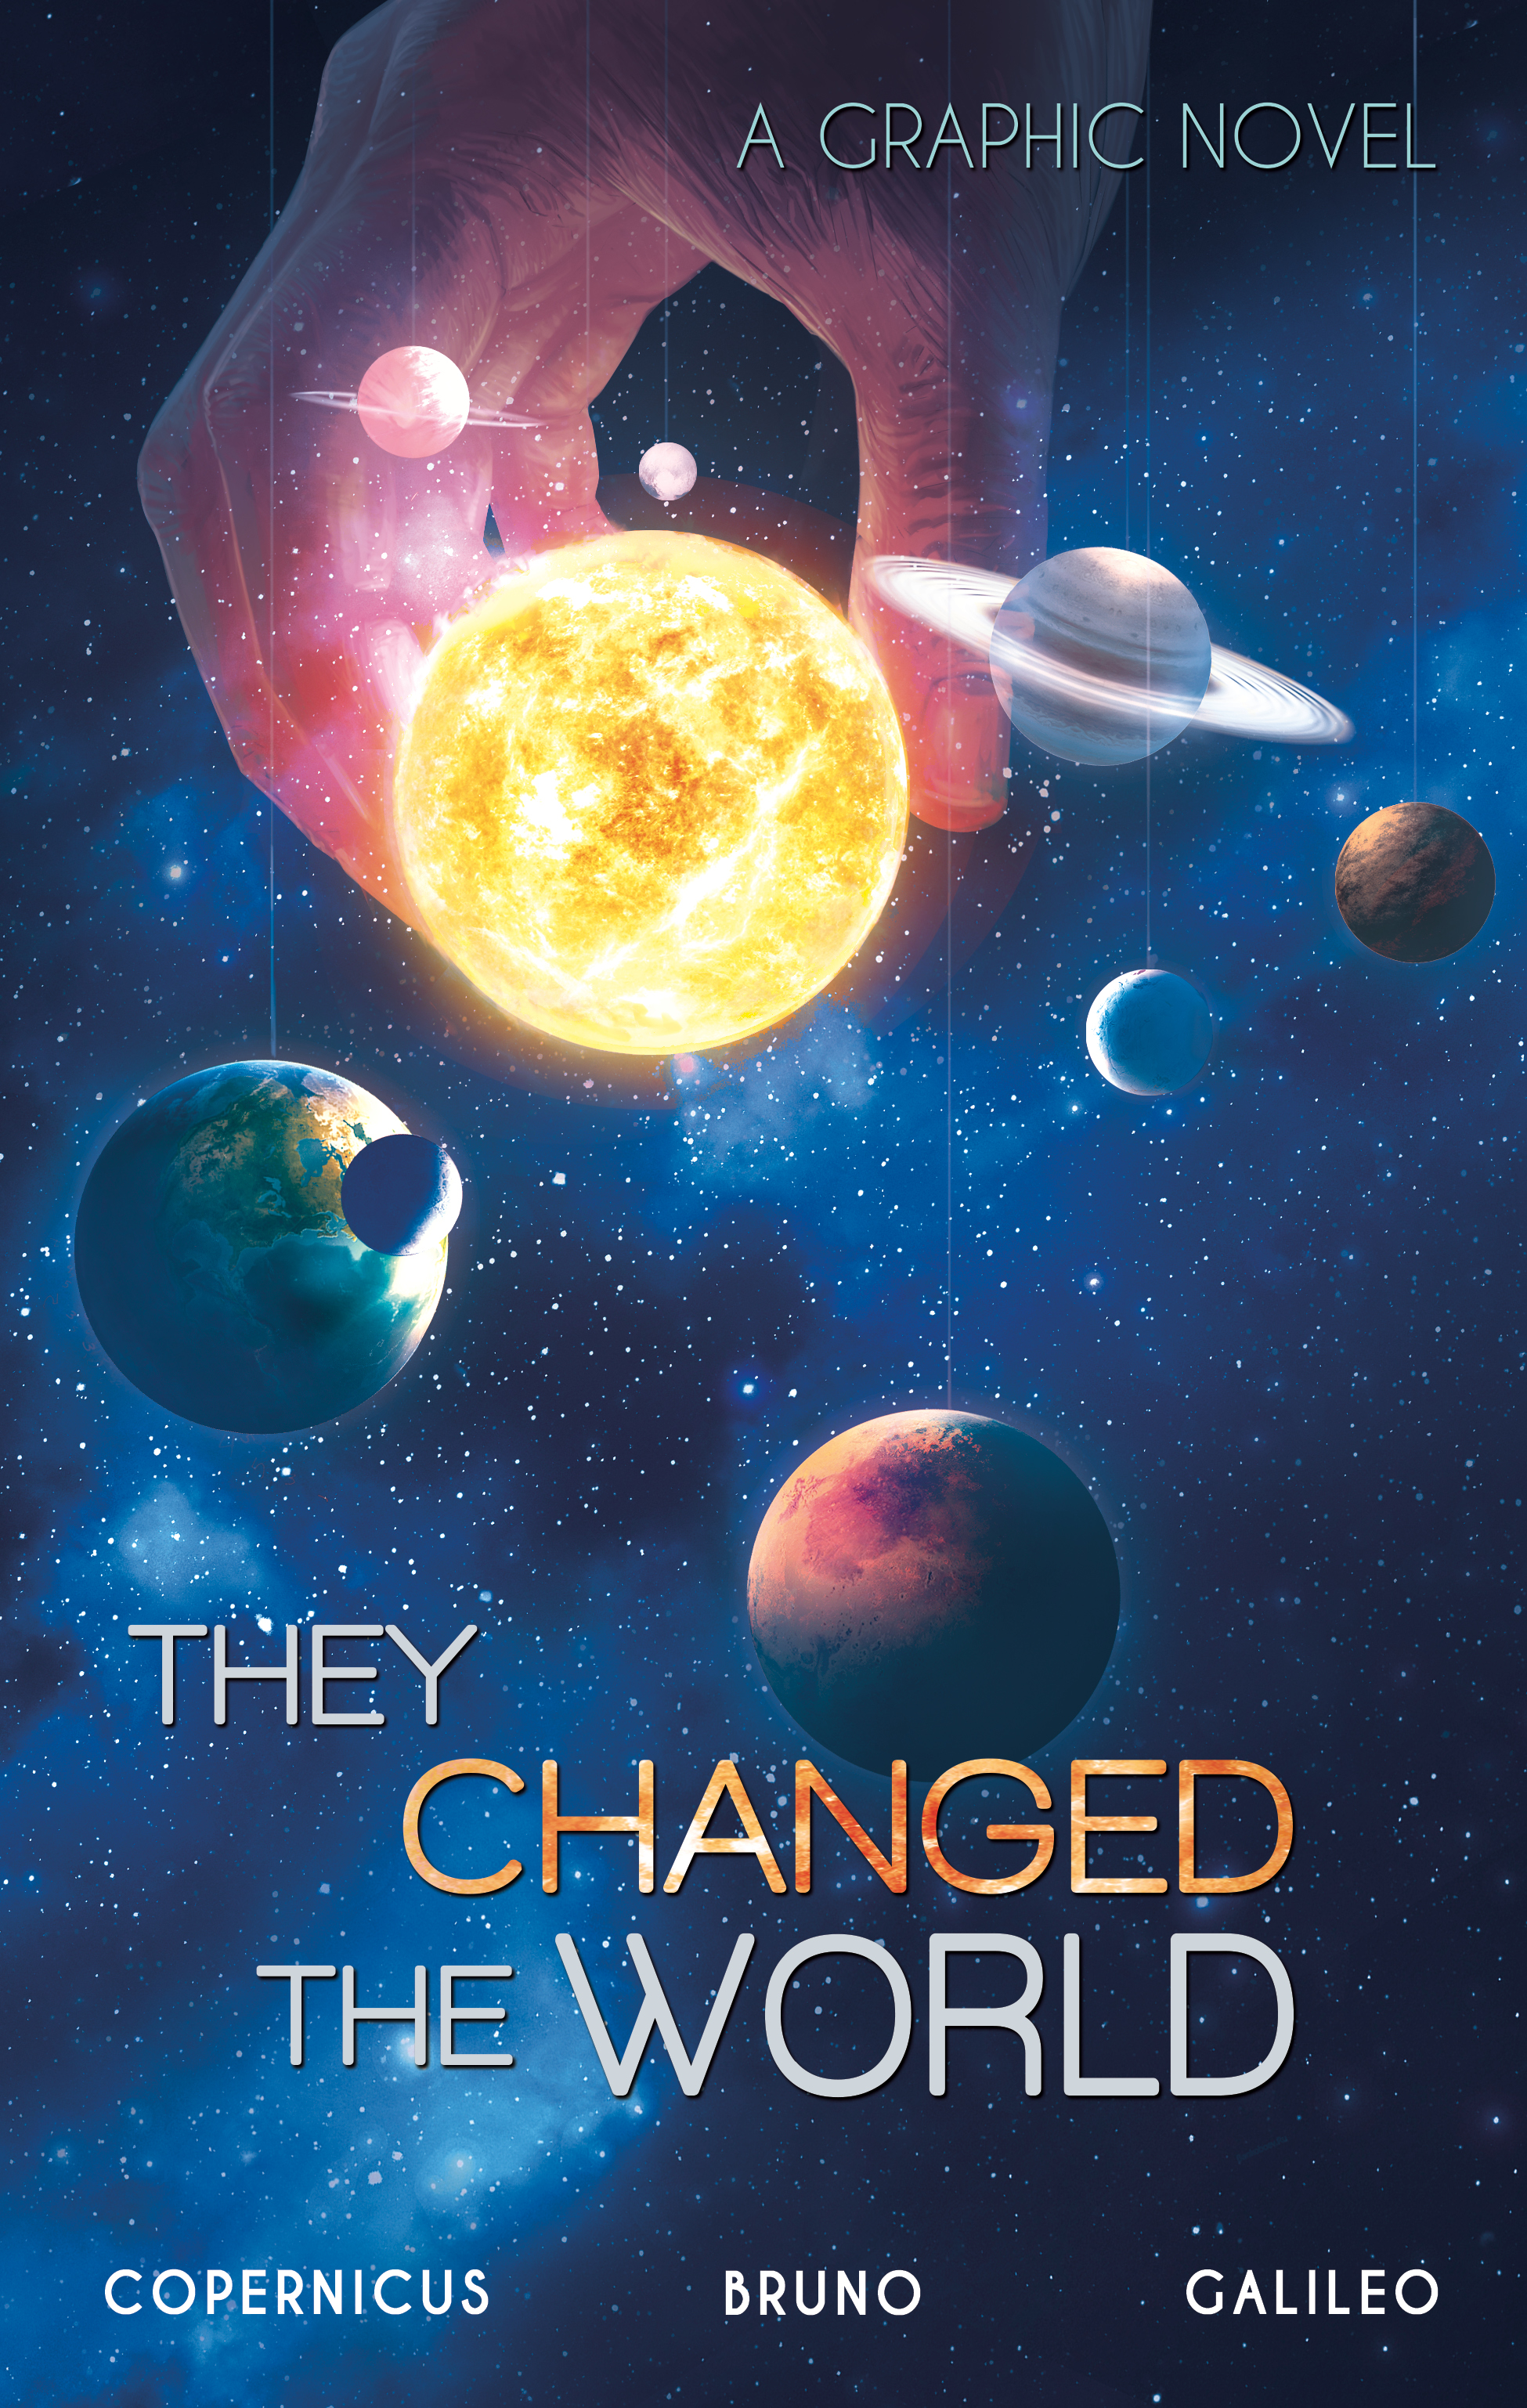 They Changed the World :  Copernicus, Bruno, Galileo